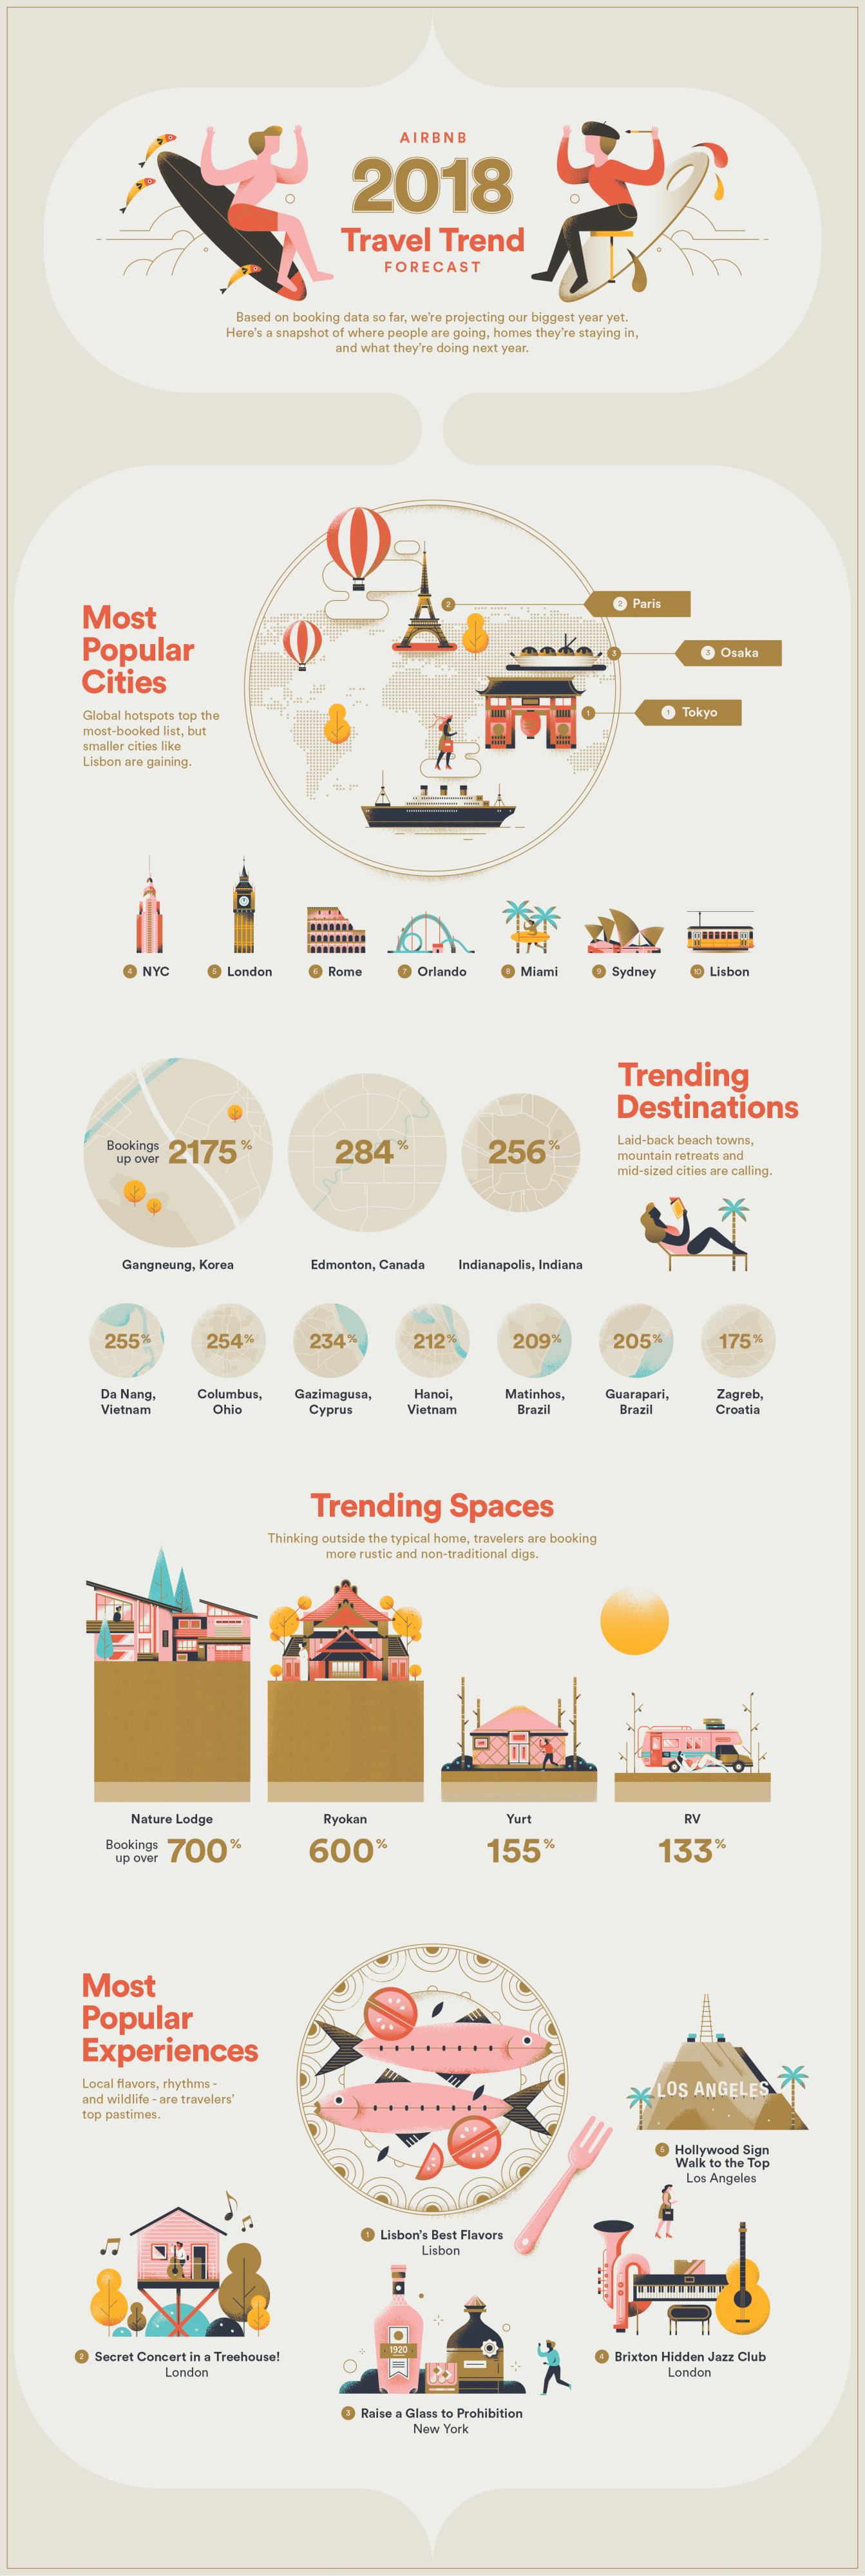 AirBnB Travel Trends